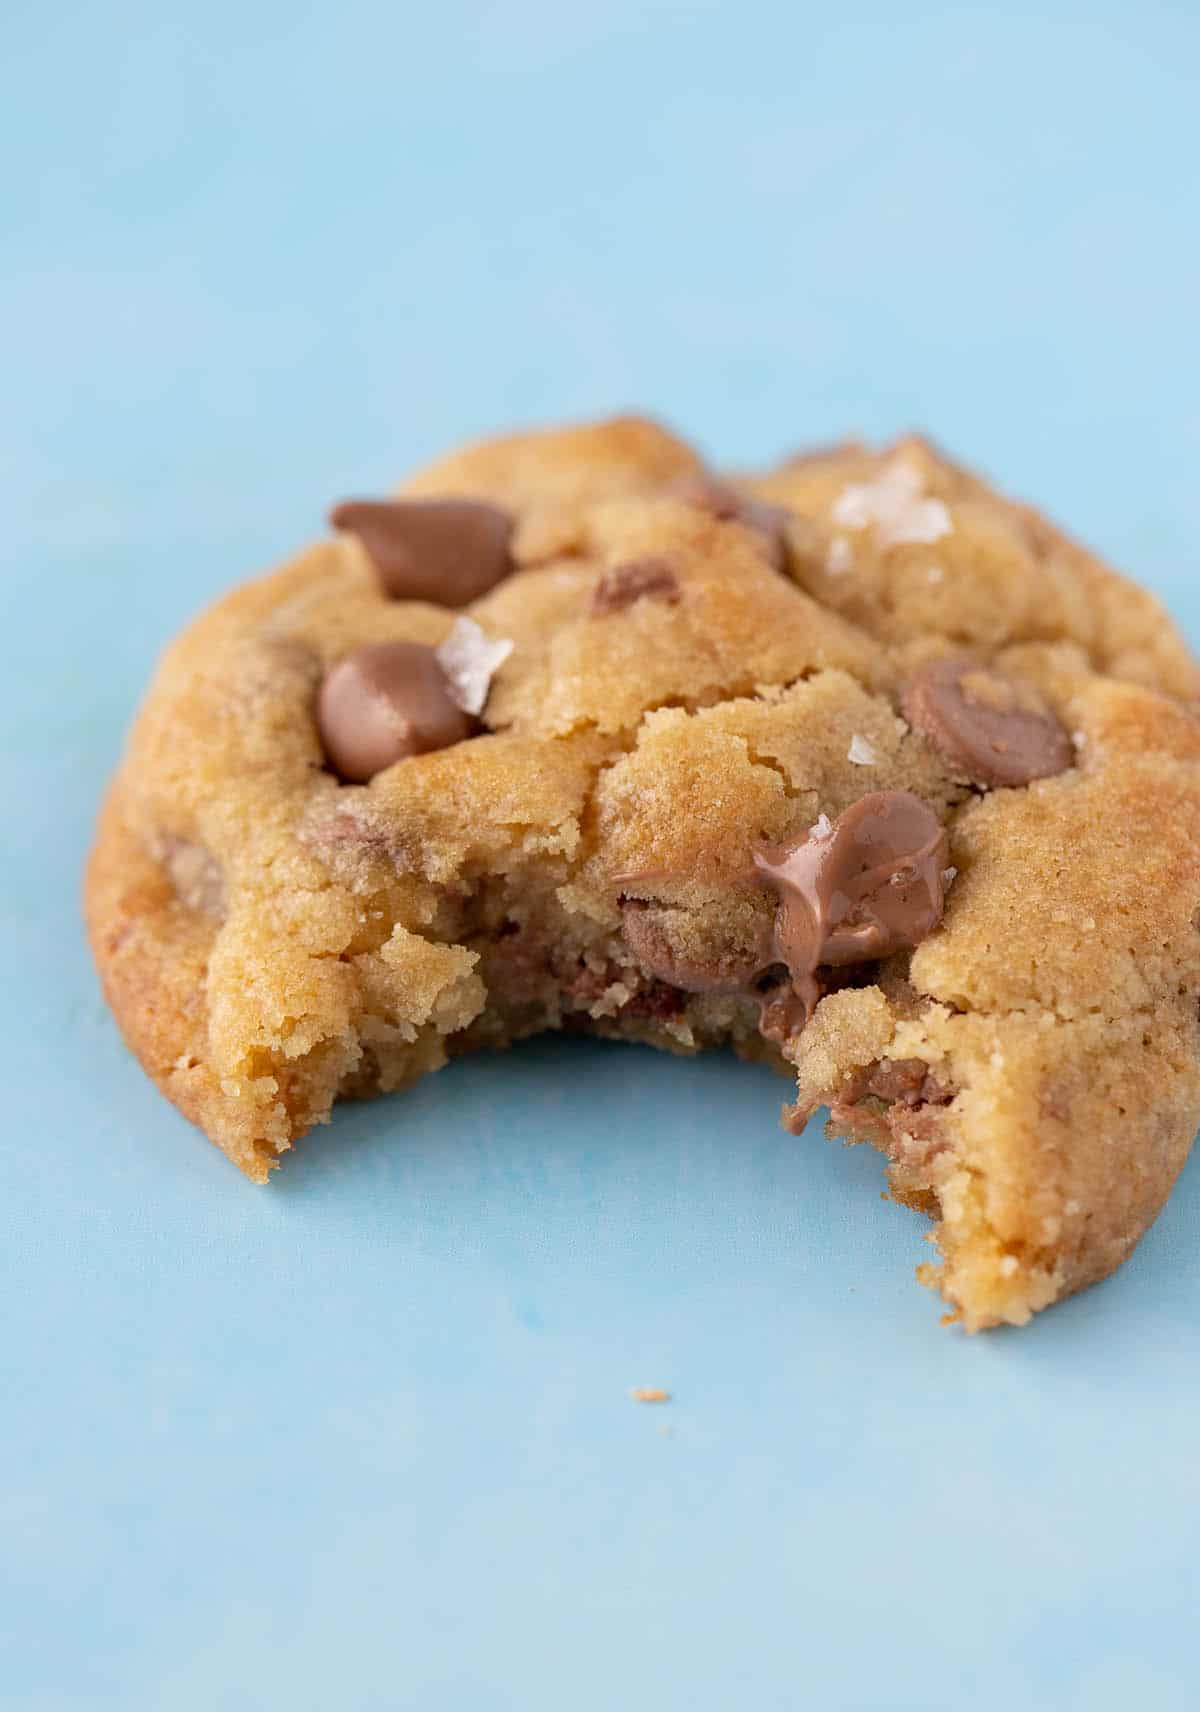 Close up of a chocolate chip cookie with a bite taken out of it